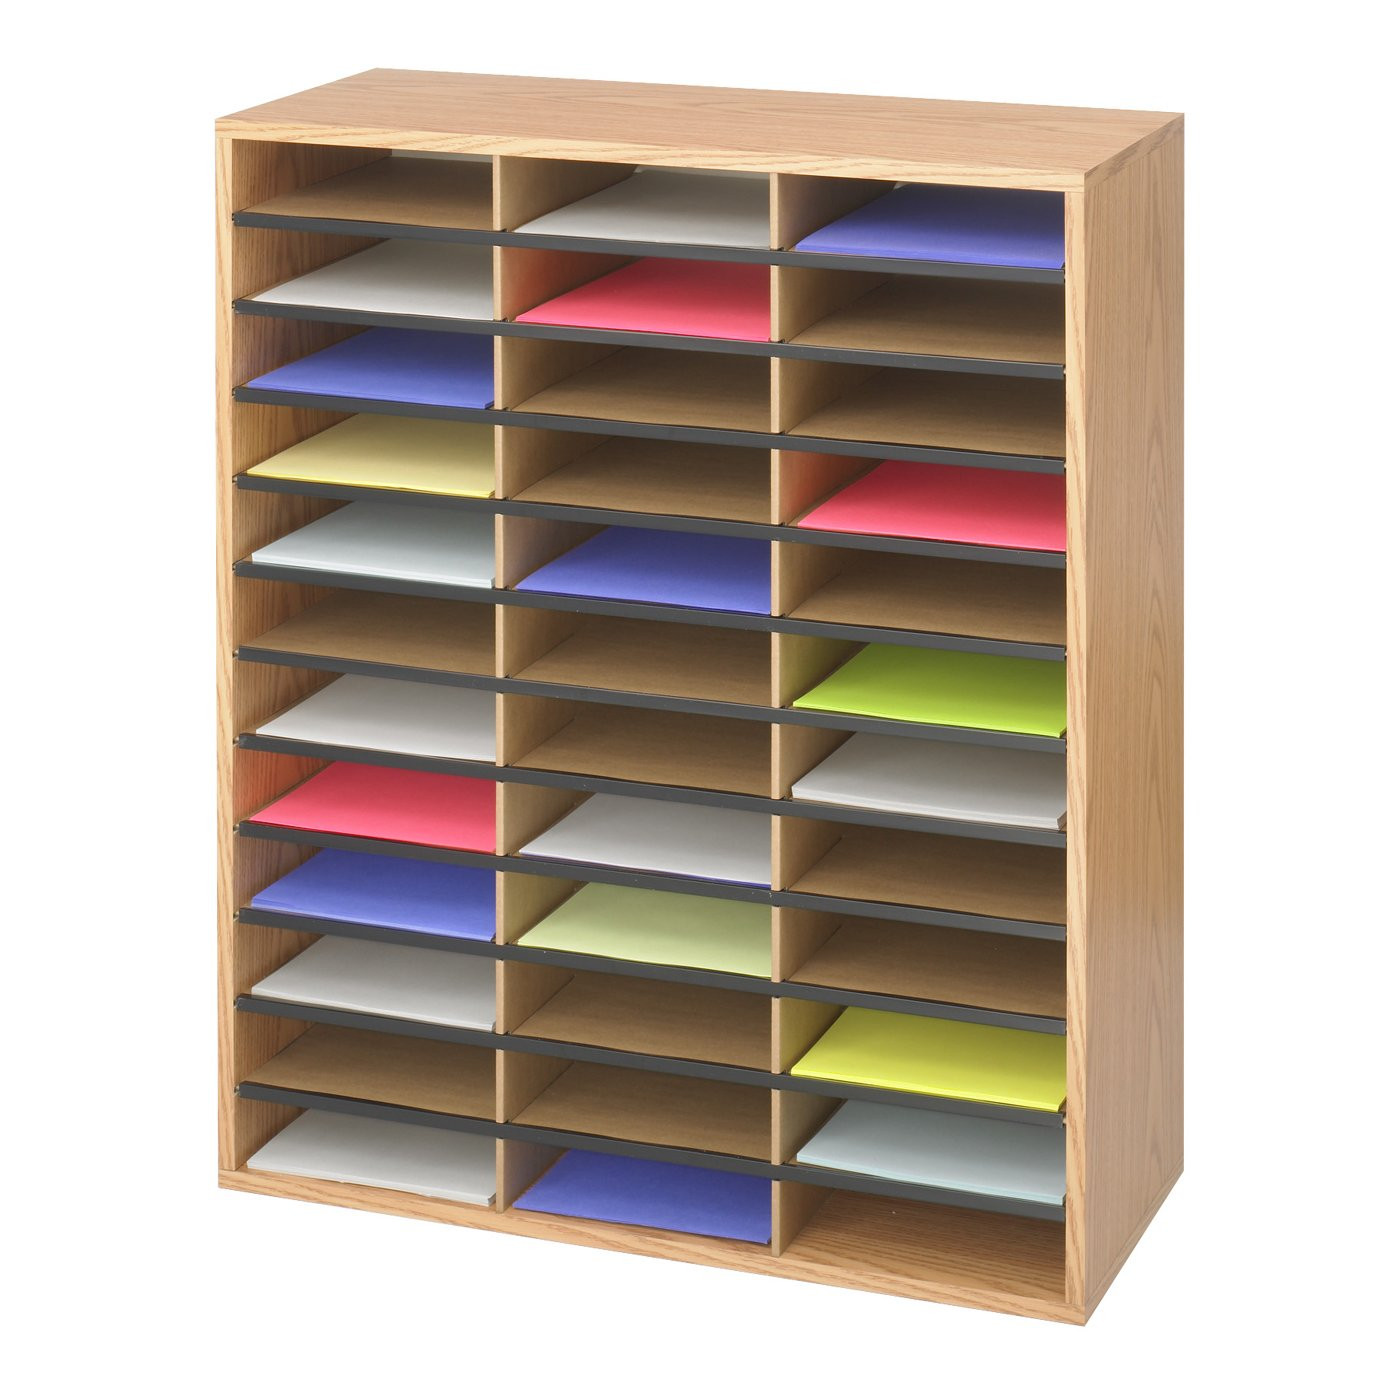 Office Shelf Organizer  Safco 9403MO Wood Corrugated Literature Organizer fice